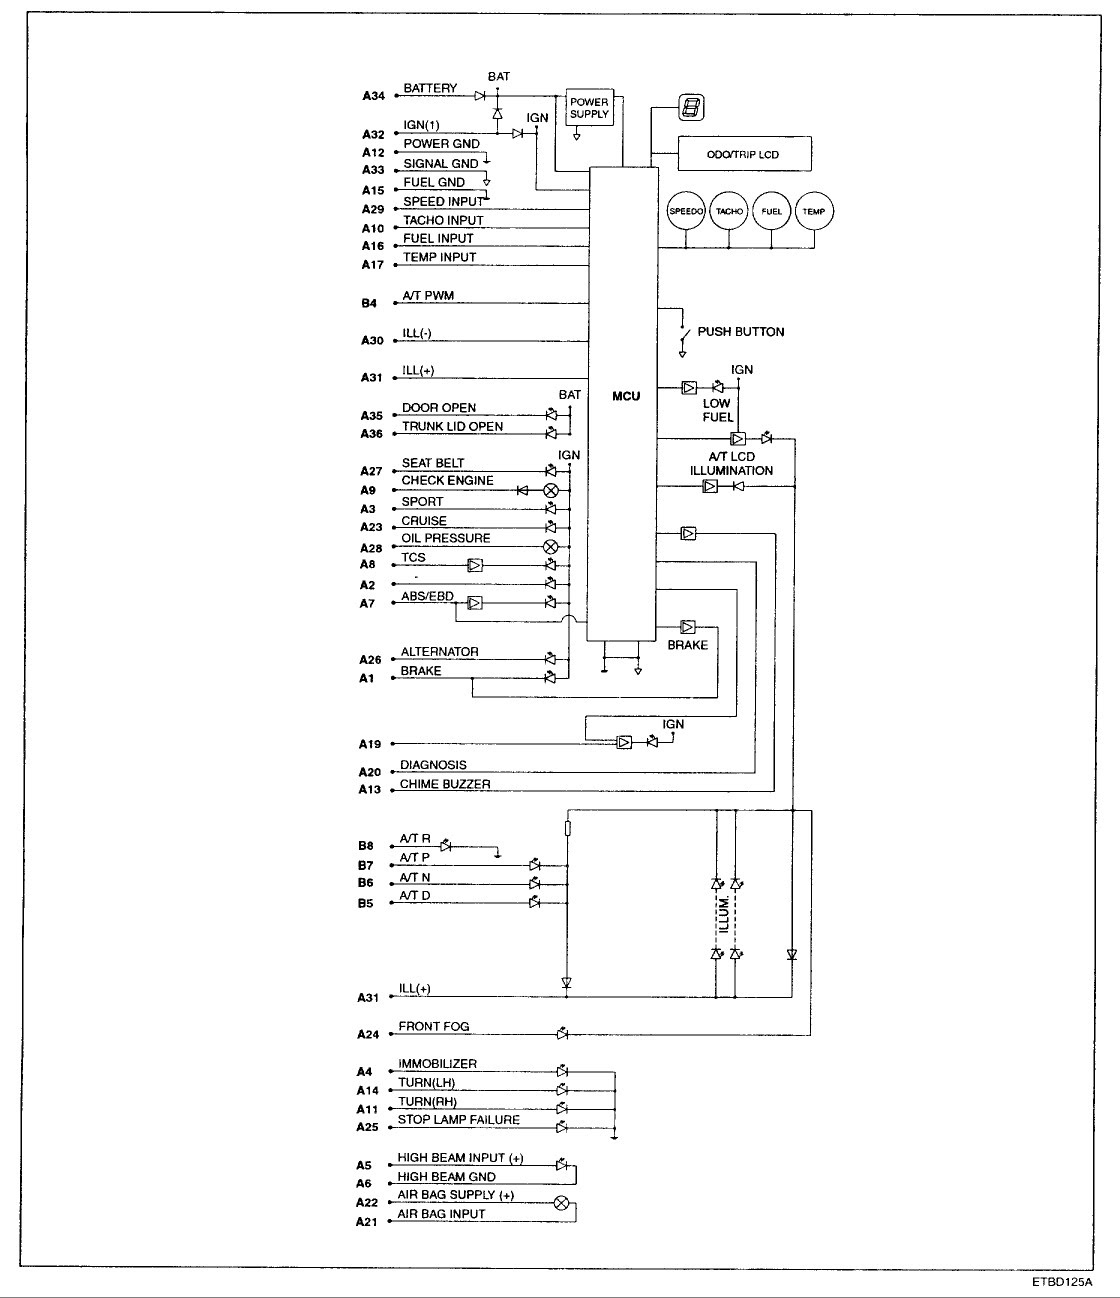 [DIAGRAM_38EU]  Wiring Manual PDF: 2004 Hyundai Accent Radio Wiring Diagram | 2004 Hyundai Santa Fe Radio Wiring Diagram |  | Wiring Manual PDF - blogger